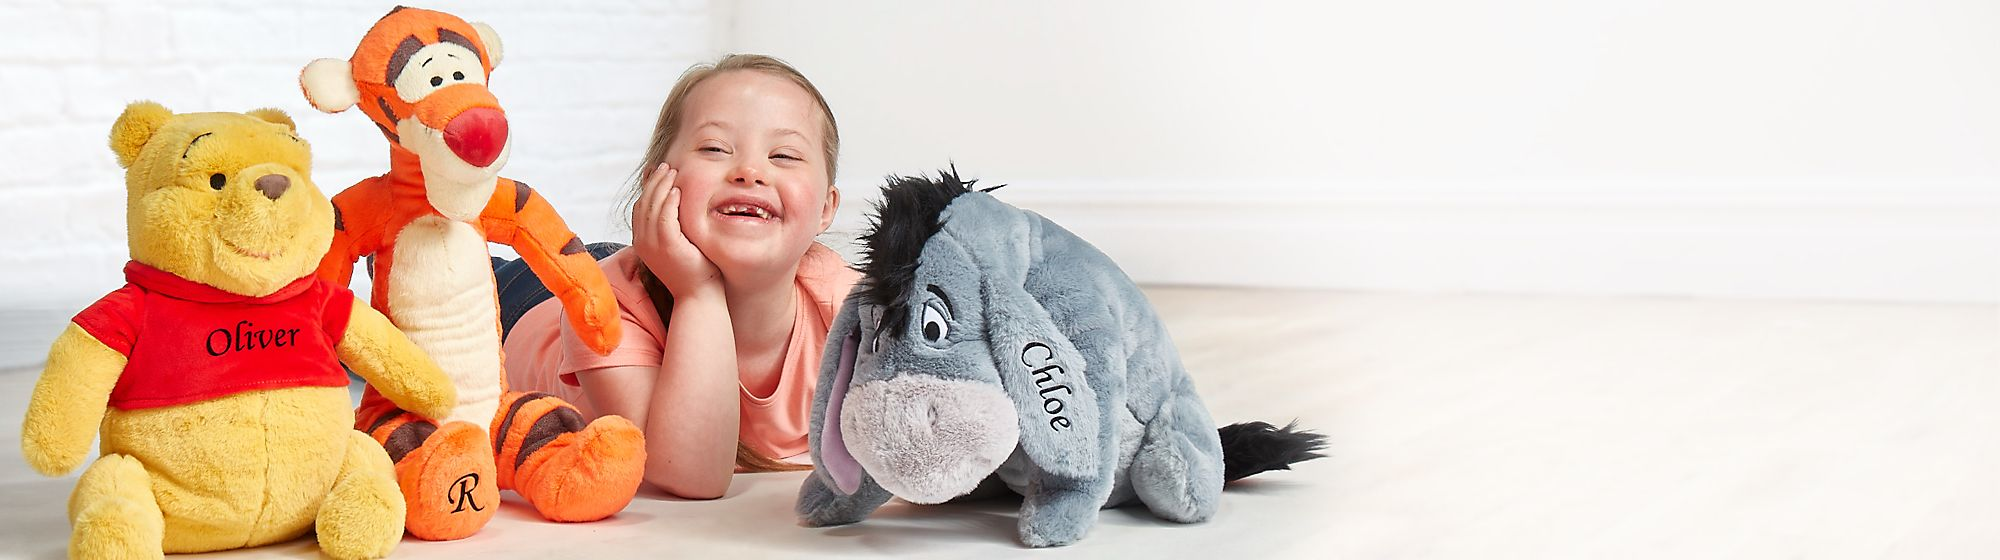 Personalisation Shop Add that personal touch to our timeless soft toys